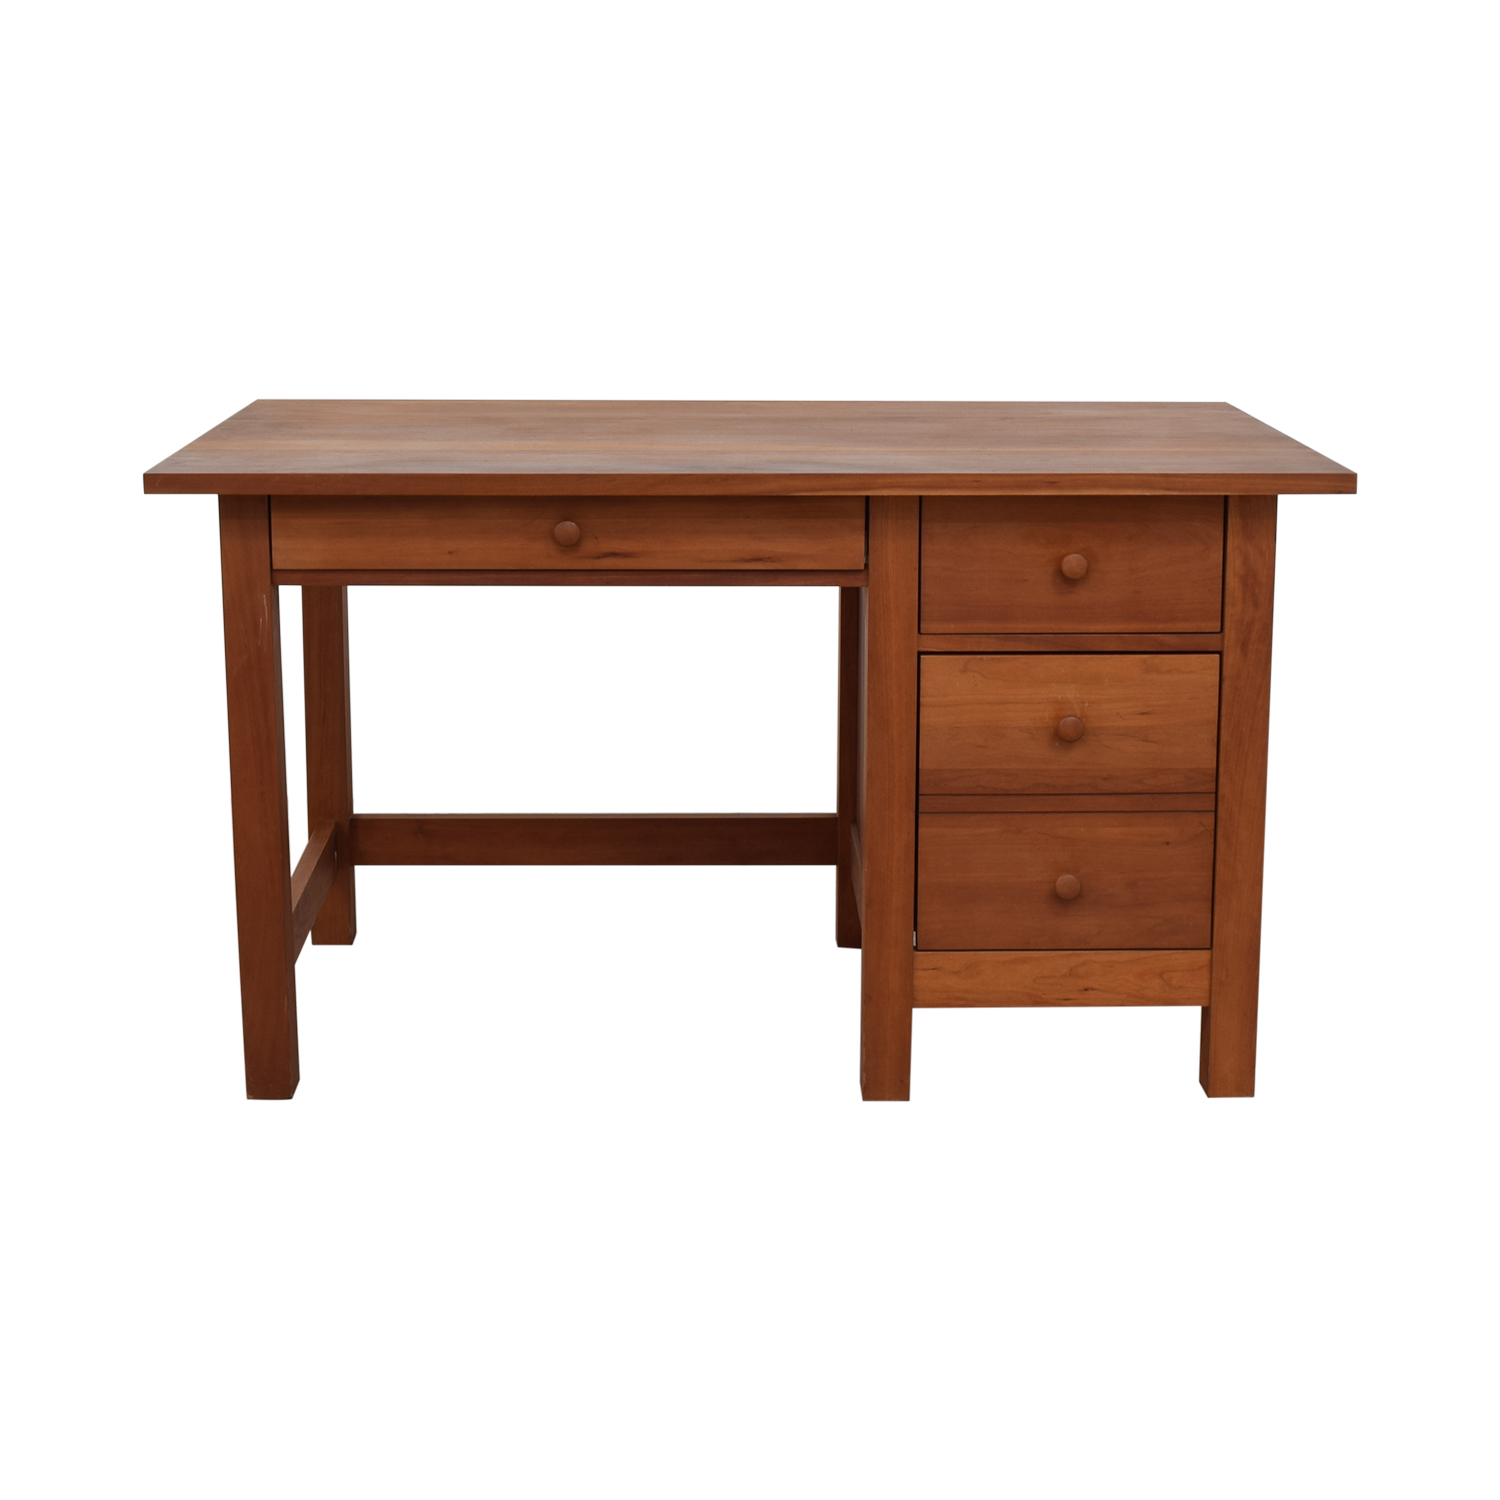 Vermont Furniture Designs Vermont Furniture Designs Shaker Two-Drawer with Keyboard Tray Desk Tables